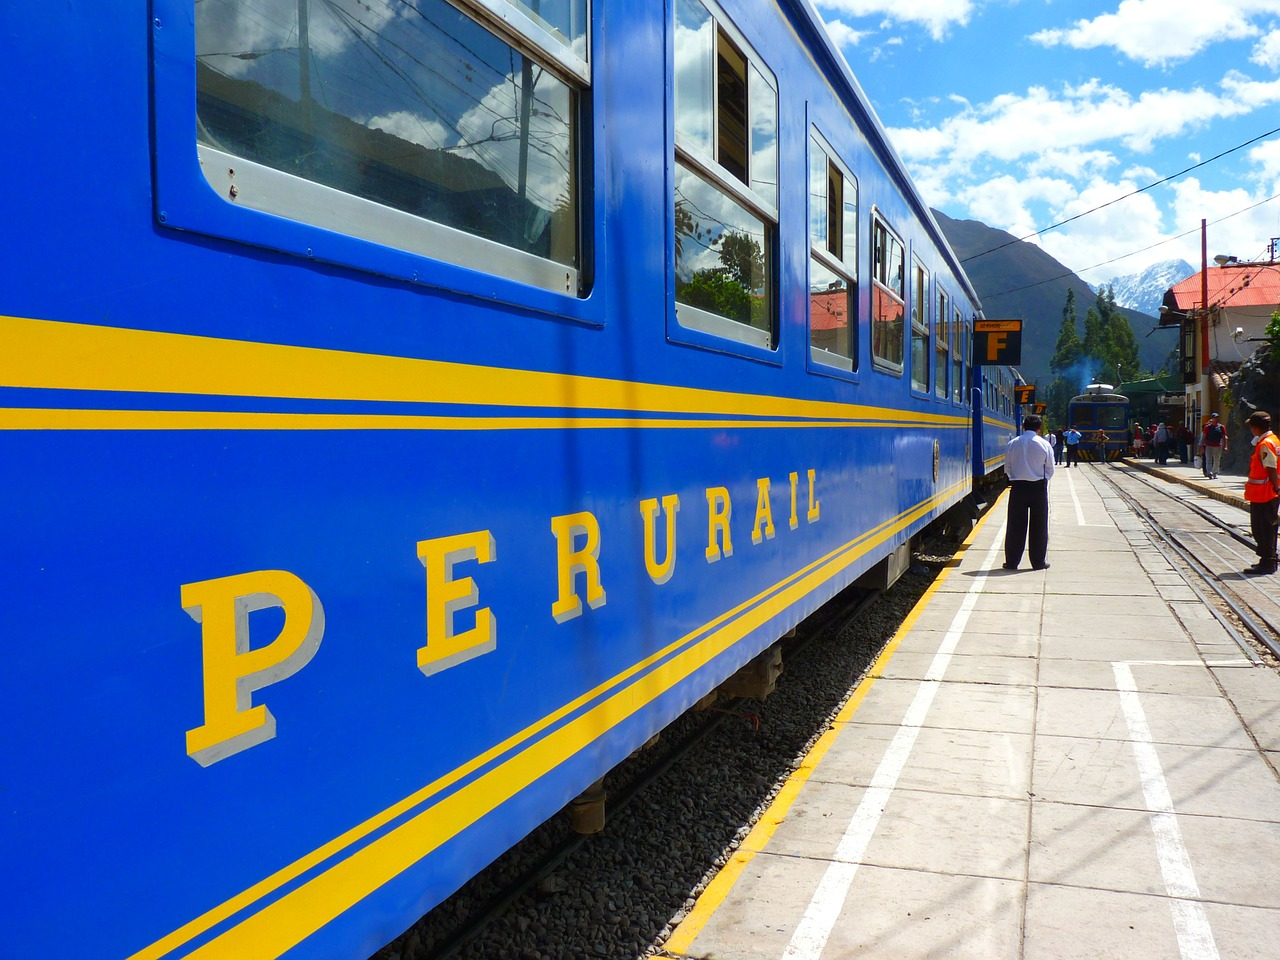 train,railway station,platform,rail tickets,andean railway,perurail,peru,machu picchu,free pictures, free photos, free images, royalty free, free illustrations, public domain